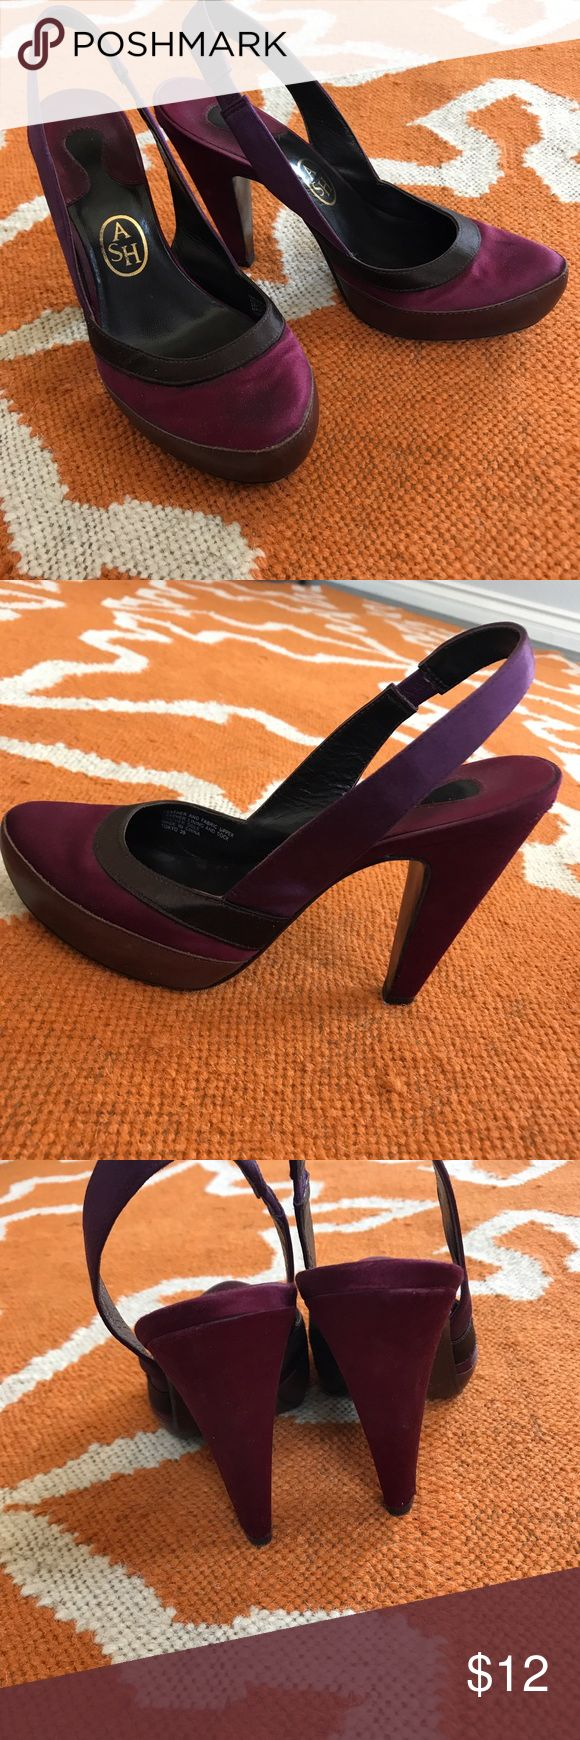 ASH magenta sling back heels Tops of shoes are a satiny fabric in a beautiful magenta color. 4 in heel with 1 in platform. Some discoloration at front toe area - see photos. Size is euro 39. I wear a 8/8.5 and these fit me perfectly.  Sizing info for this brand can be found here: https://www.ashfootwear.co.uk/size-guide-i26 Ash Shoes Heels